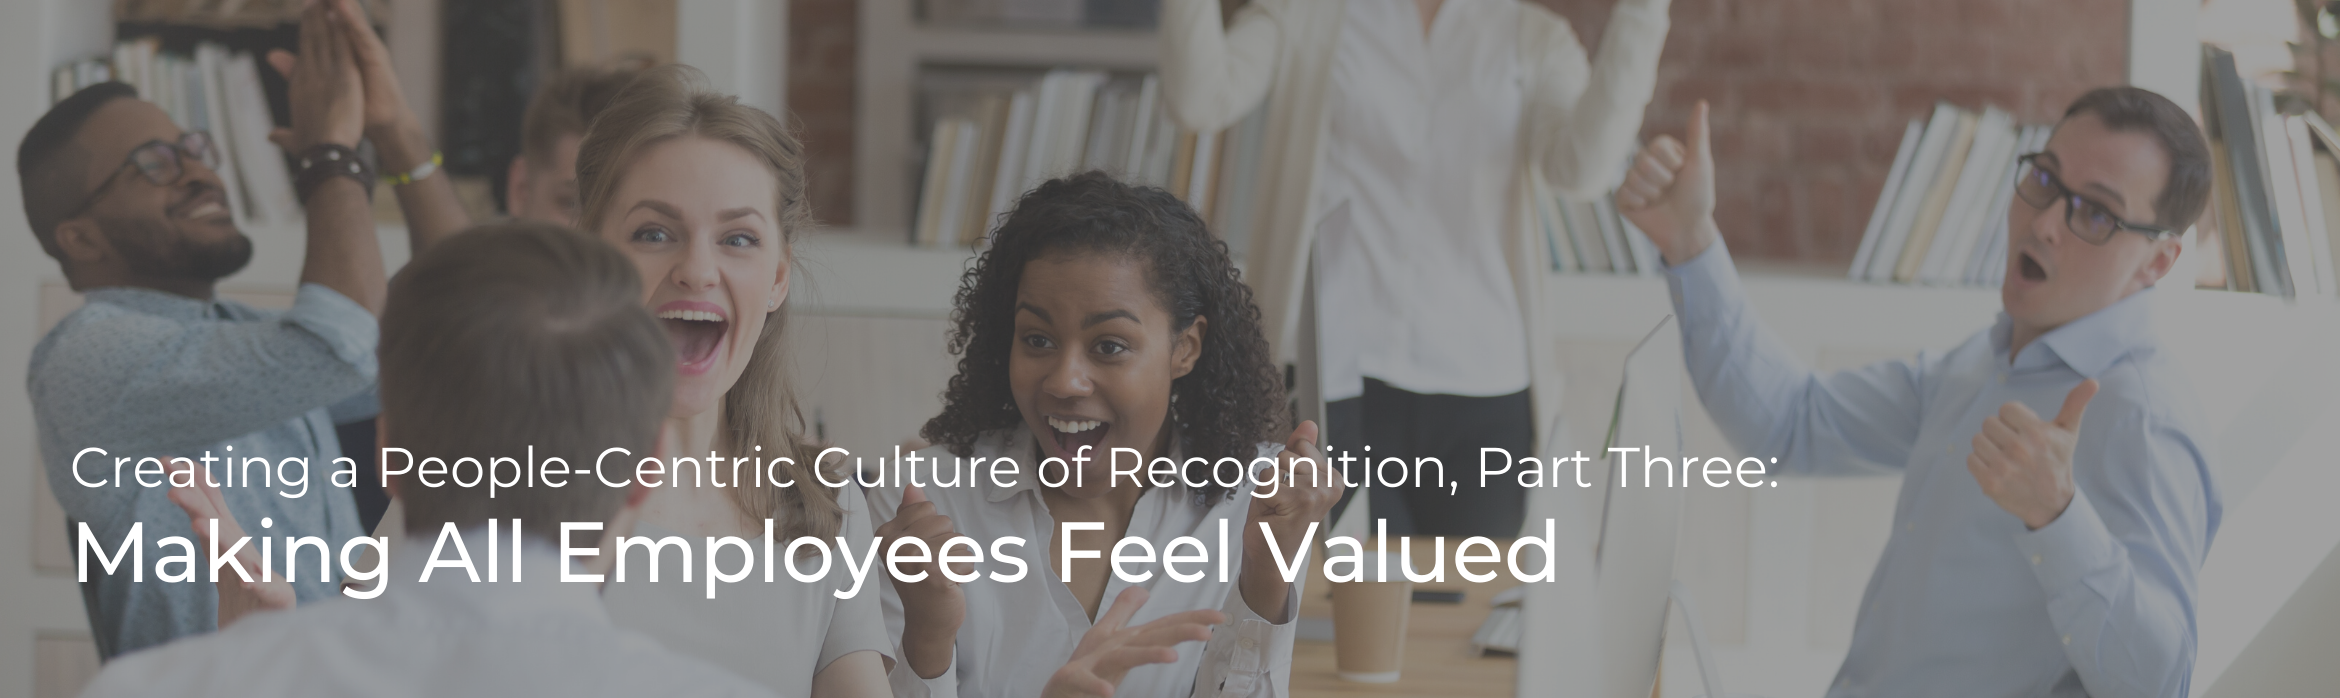 Creating a People-Centric Culture of Recognition: Part Three – Making All Employees Feel Valued